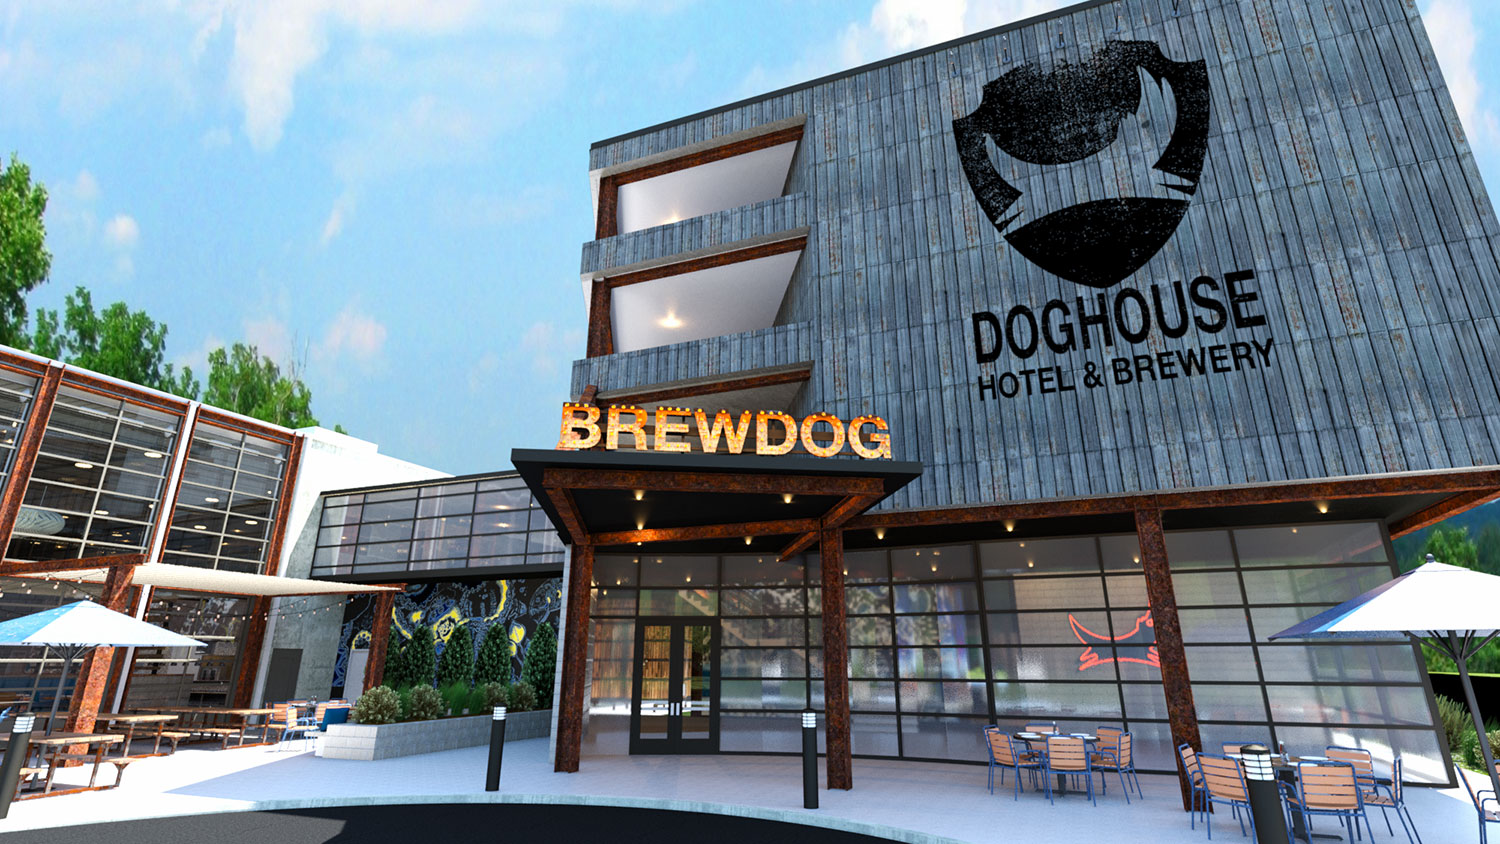 A New Beer Hotel Will Have a Private Hot Tub Full of IPA